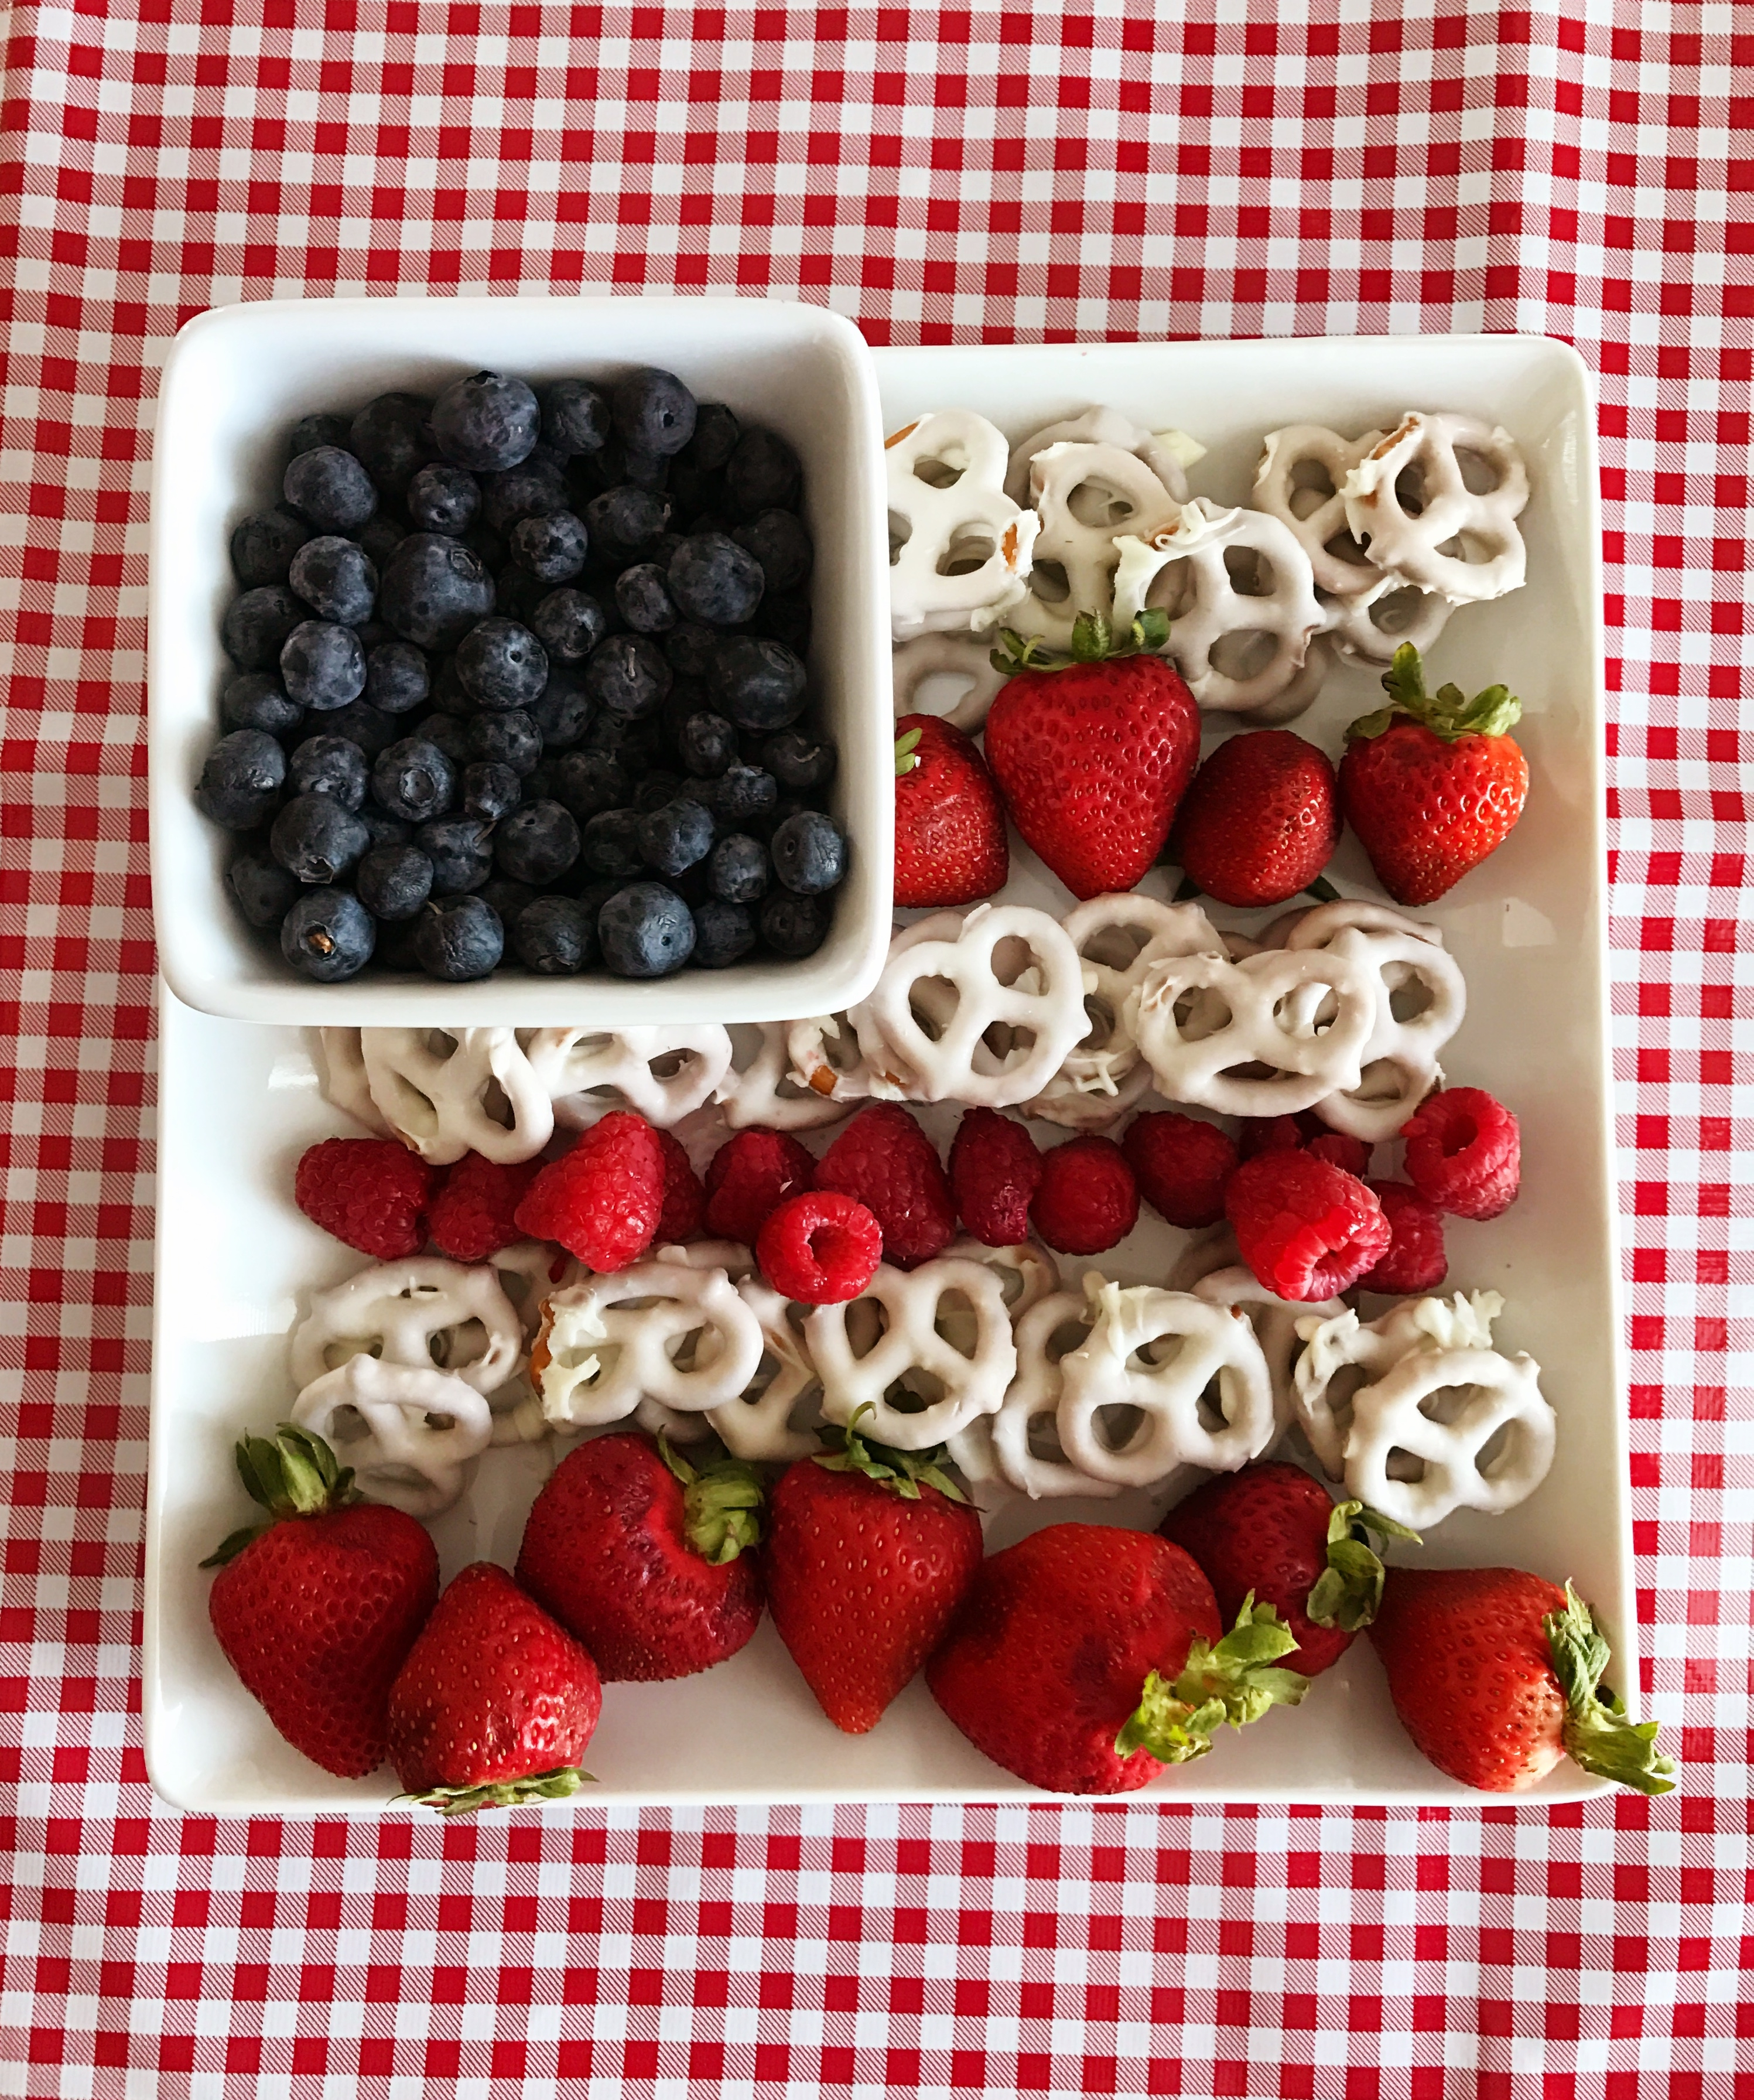 Easy American Flag Dessert Platter The Gingham Apron